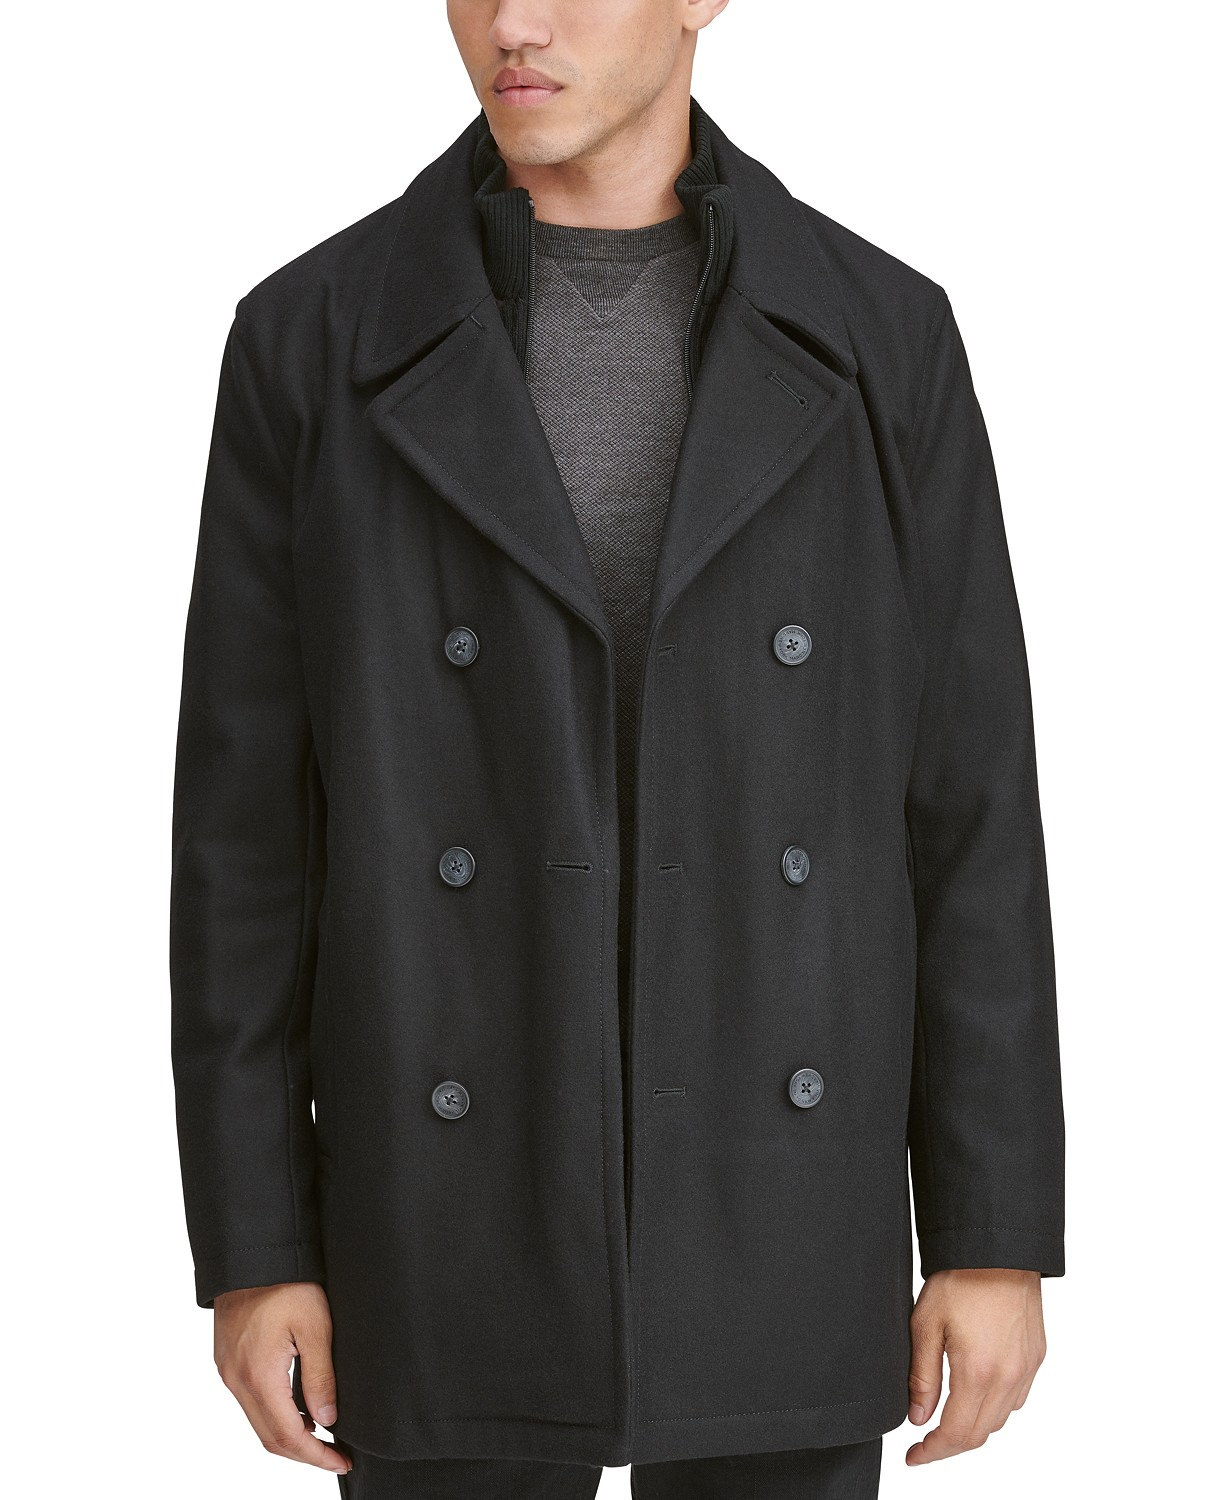 Men's Burnett Double Breasted Peacoat with Inset Knit Bib